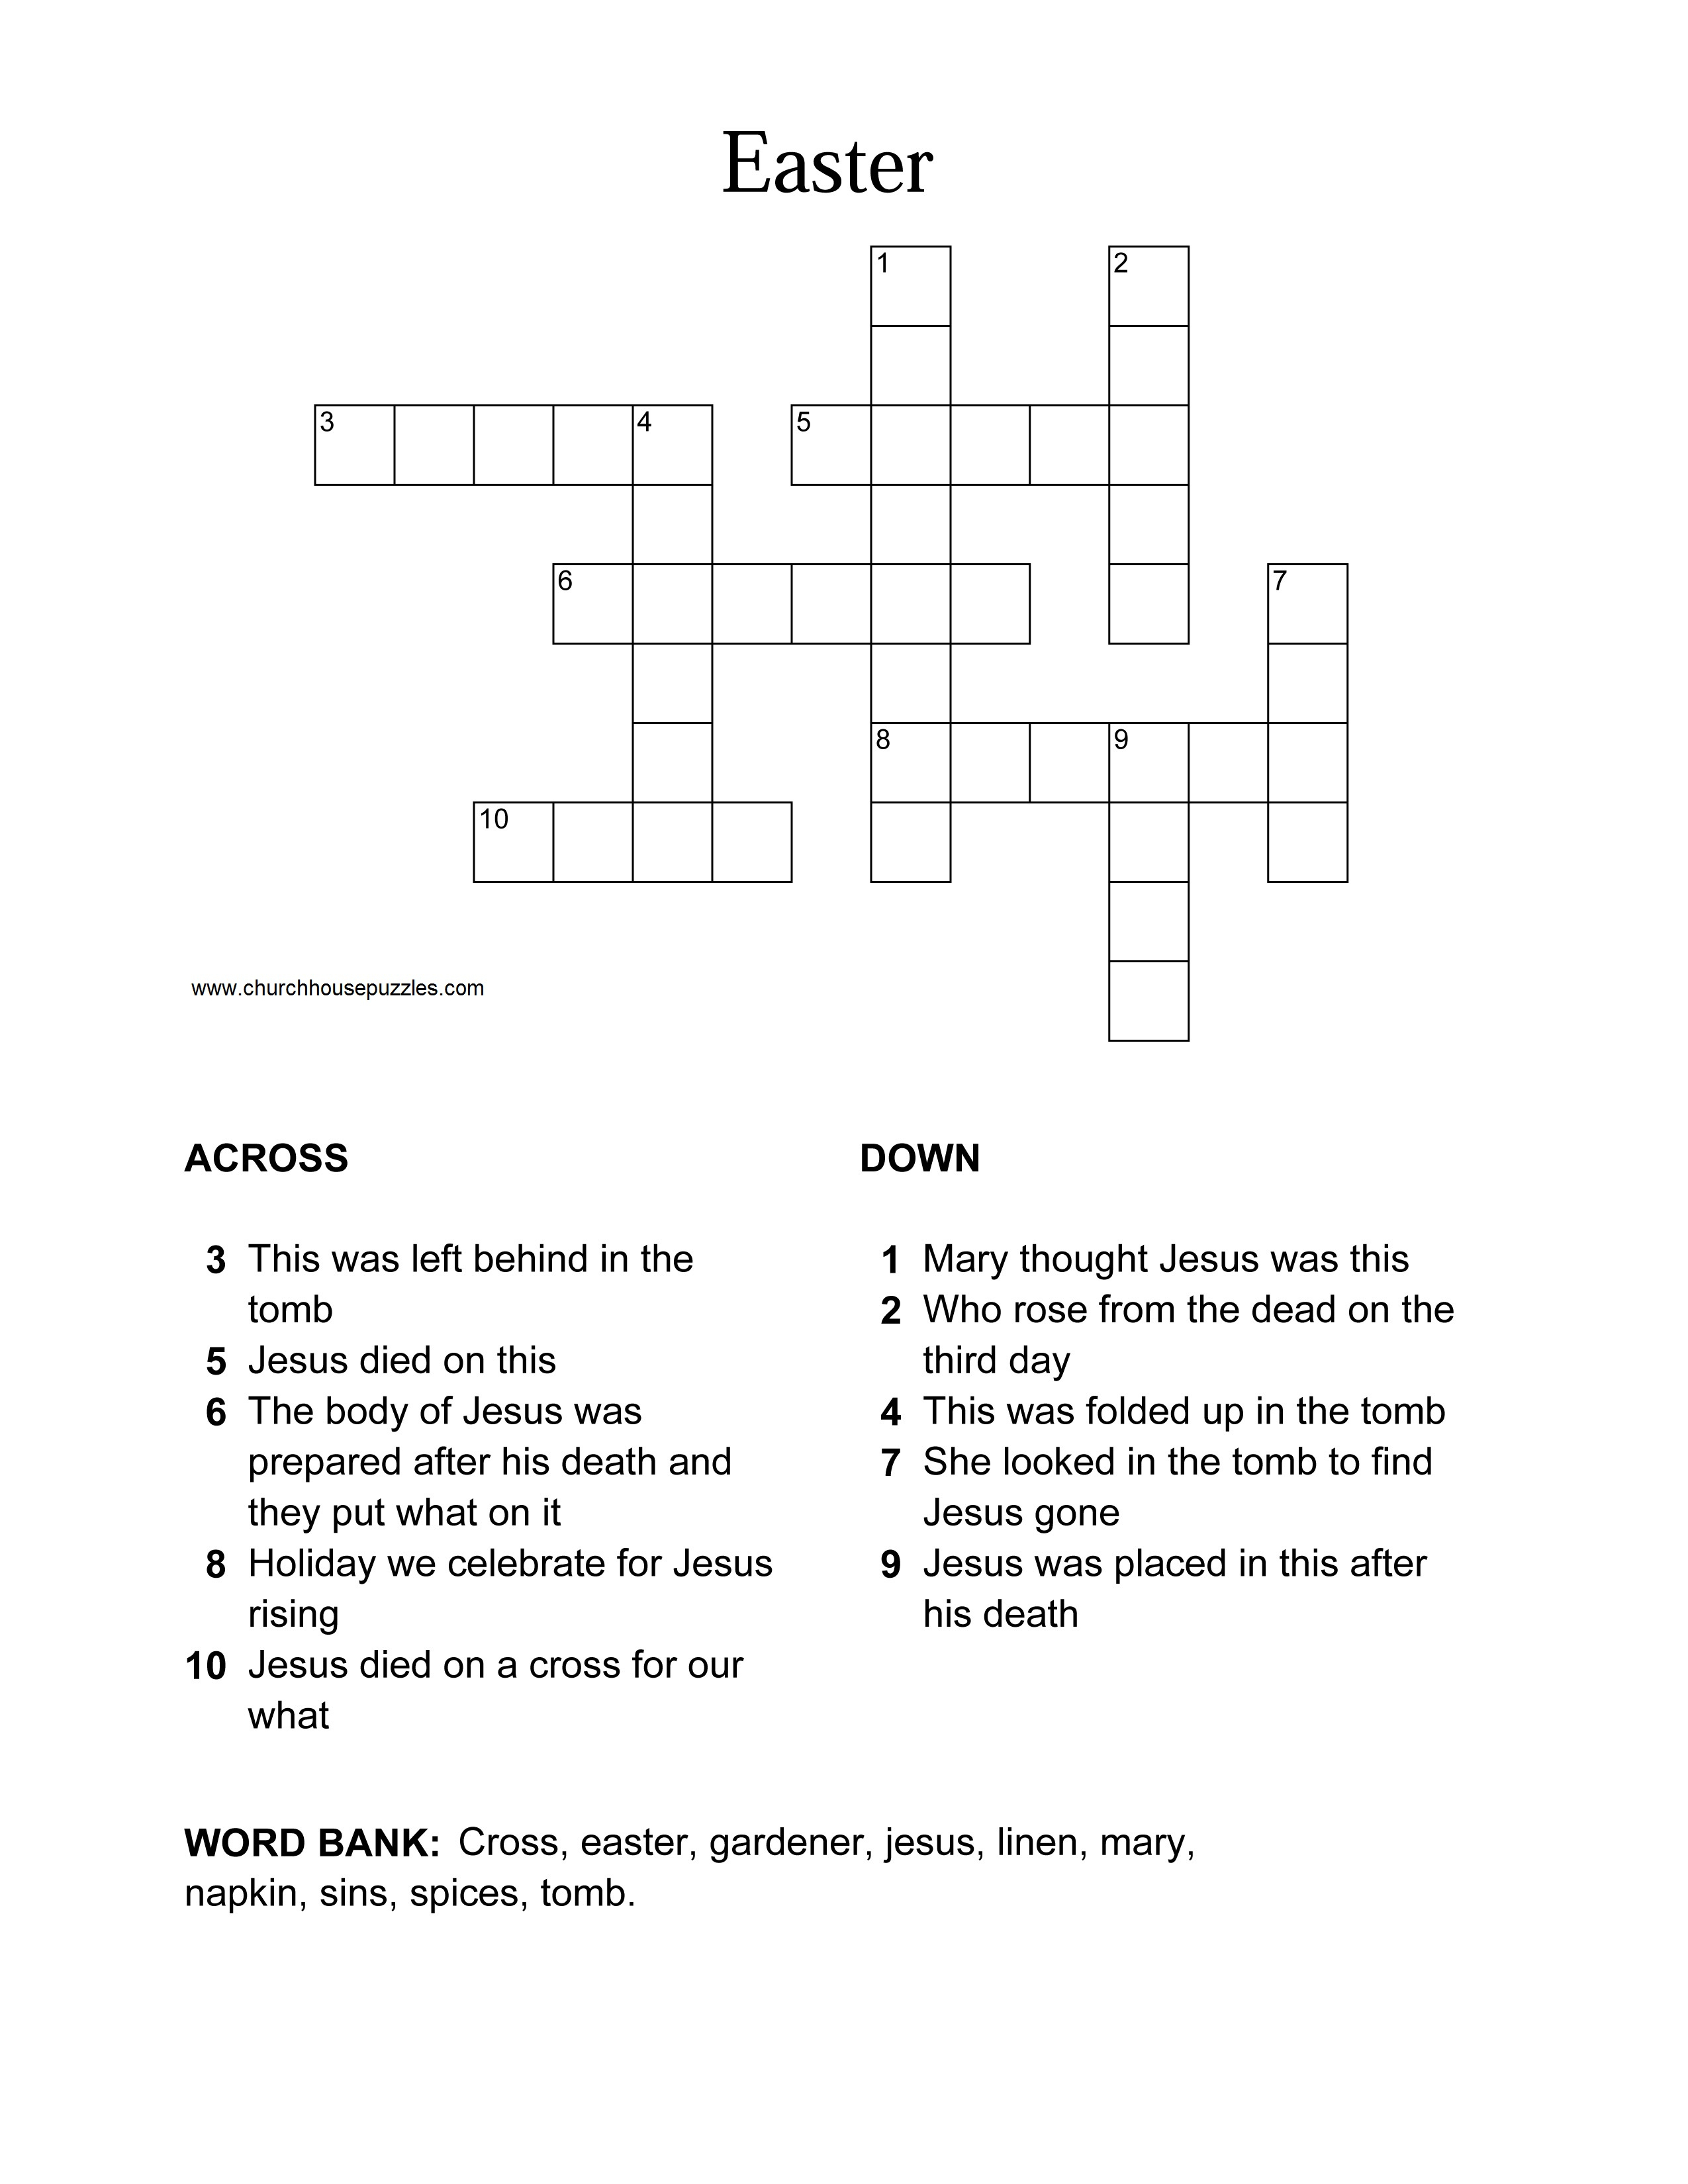 Easter Crossword Puzzle - Printable Crossword Puzzles Easter